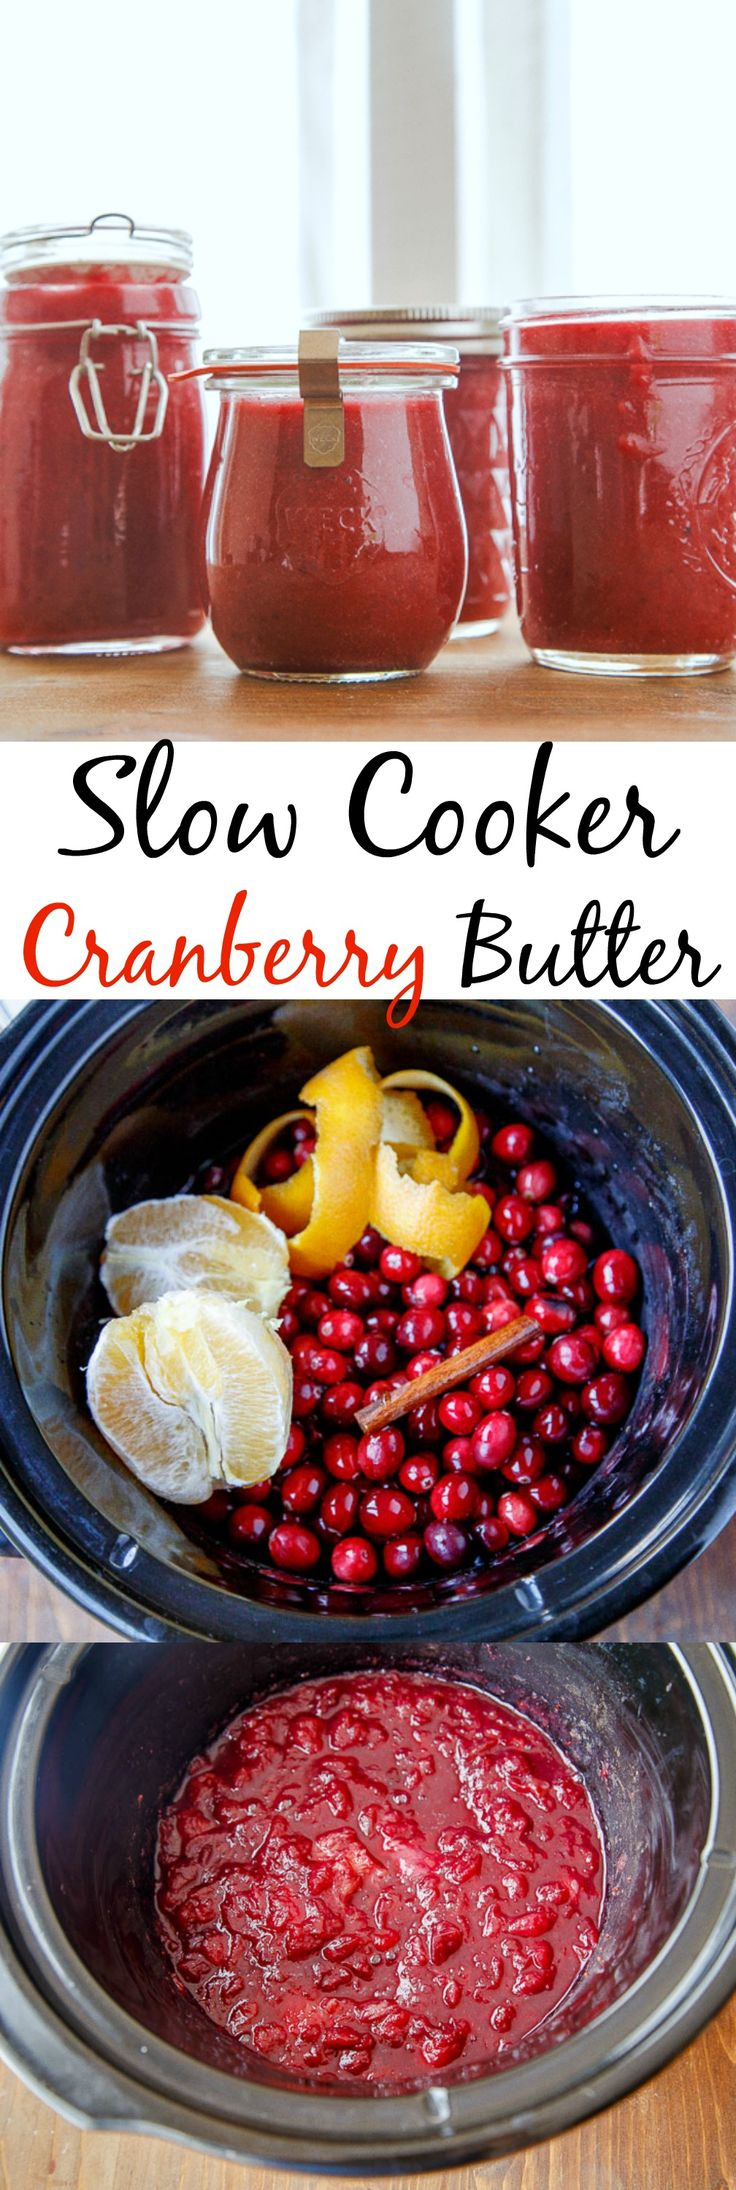 Cranberry sauce made in the slow cooker. Naturally sweetened with maple syrup and fresh orange juice. Puree it and use it like jam or spread on a cheese plate.